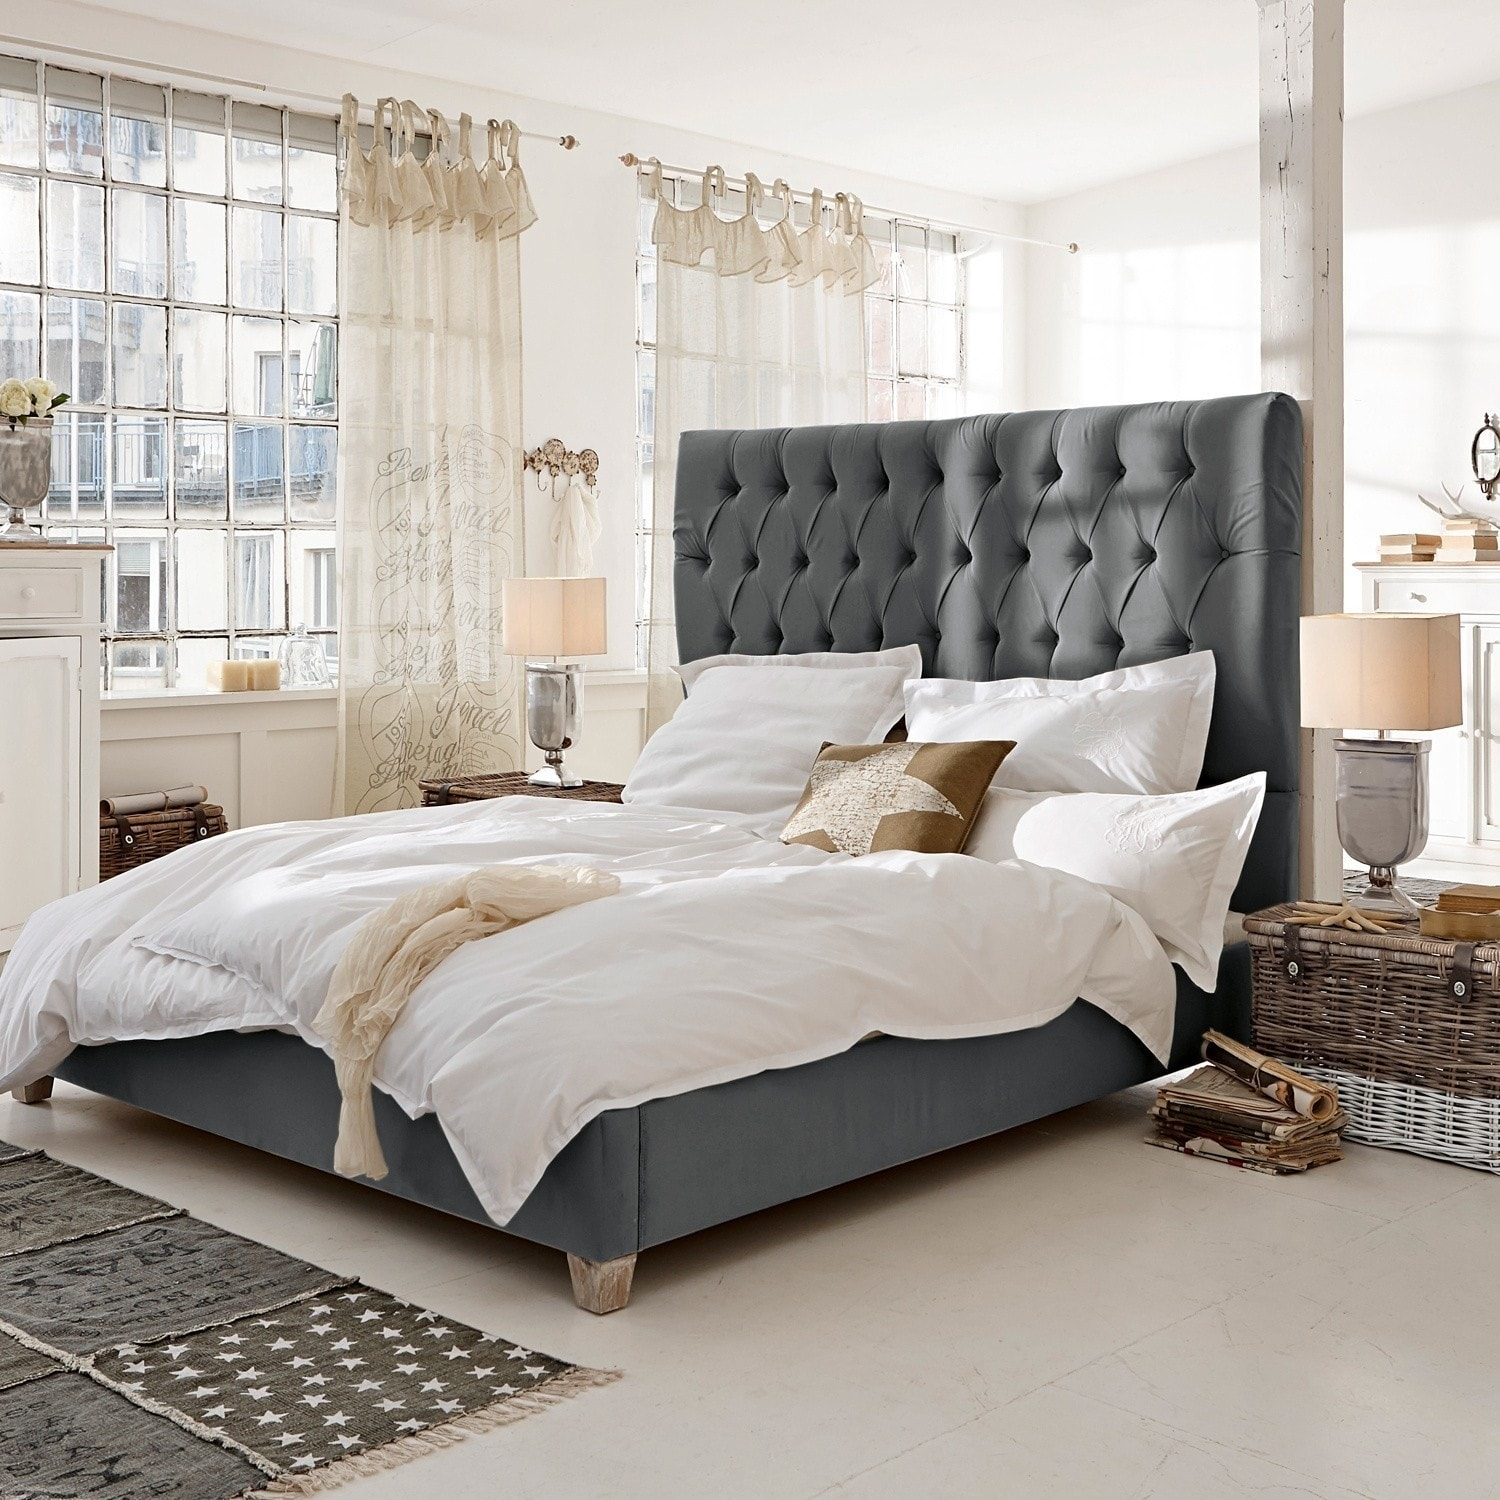 bett benton grau loberon. Black Bedroom Furniture Sets. Home Design Ideas